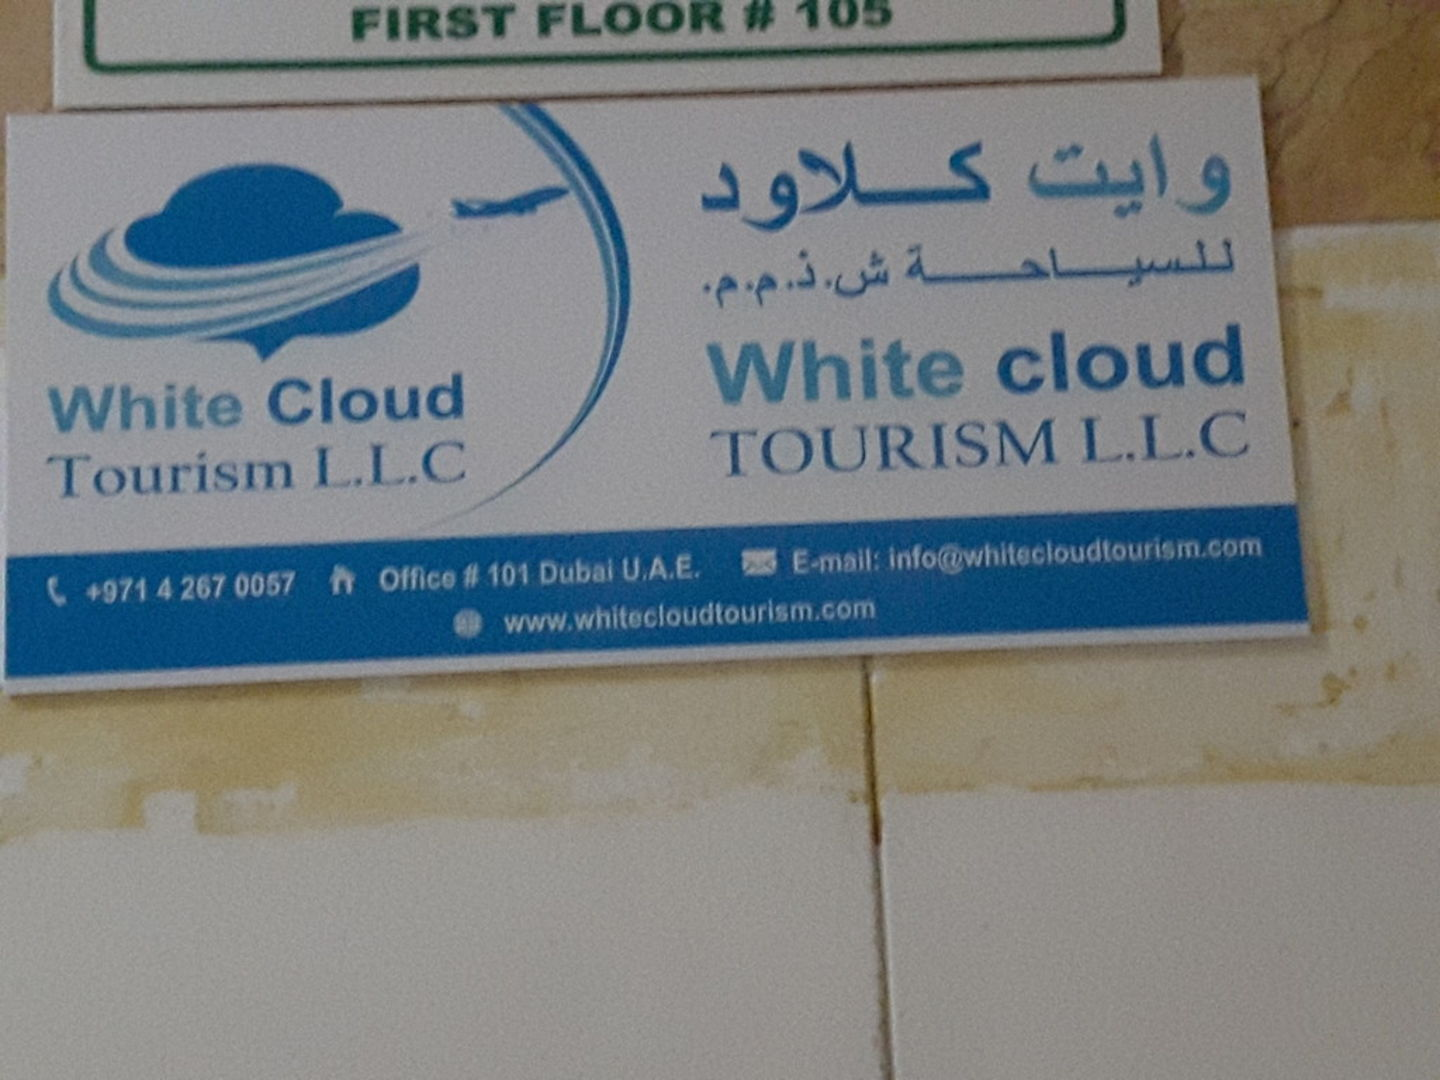 HiDubai-business-white-cloud-tourism-hotels-tourism-local-tours-activities-meena-bazar-al-souq-al-kabeer-dubai